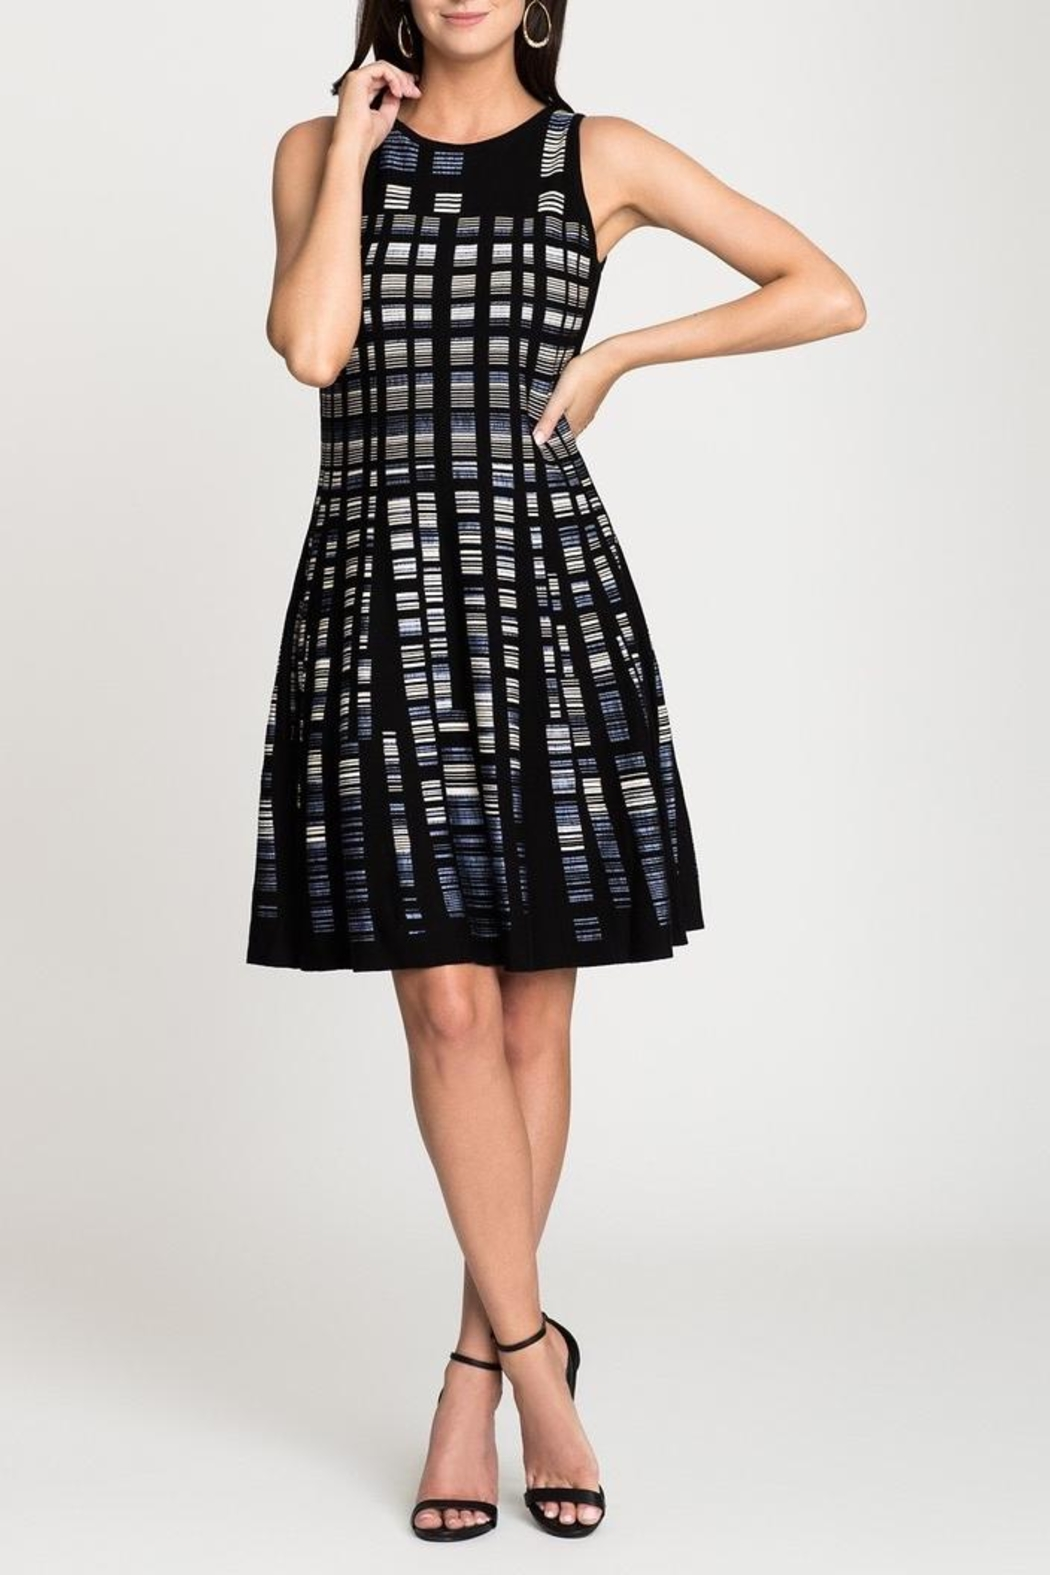 Nic + Zoe Crystal Cove Dress - Front Cropped Image